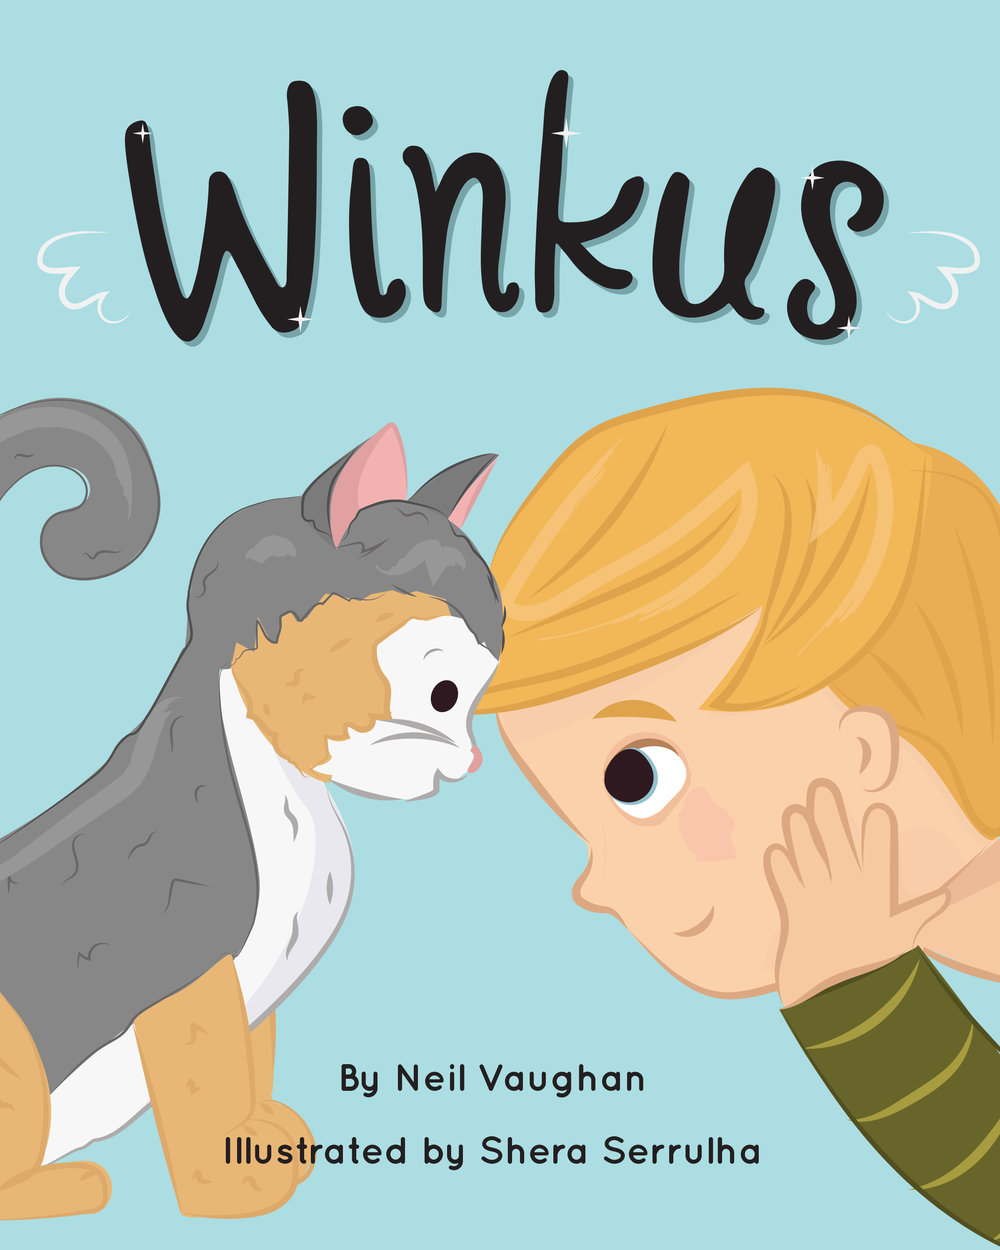 Winkus: Children's Book Design & Illustrations - A story about a boy and his cat whose love was boundless. When Sam's mother gifts her son a young kitten, they bond instantly and form a special connection. Sadly, the kitten passes away, and Sam works through the difficult emotions of losing a pet. Youngsters who have also lost beloved pets can see themselves and their feelings mirrored in Sam and Winkus, and will find comfort in the story. Purchasing information to follow.